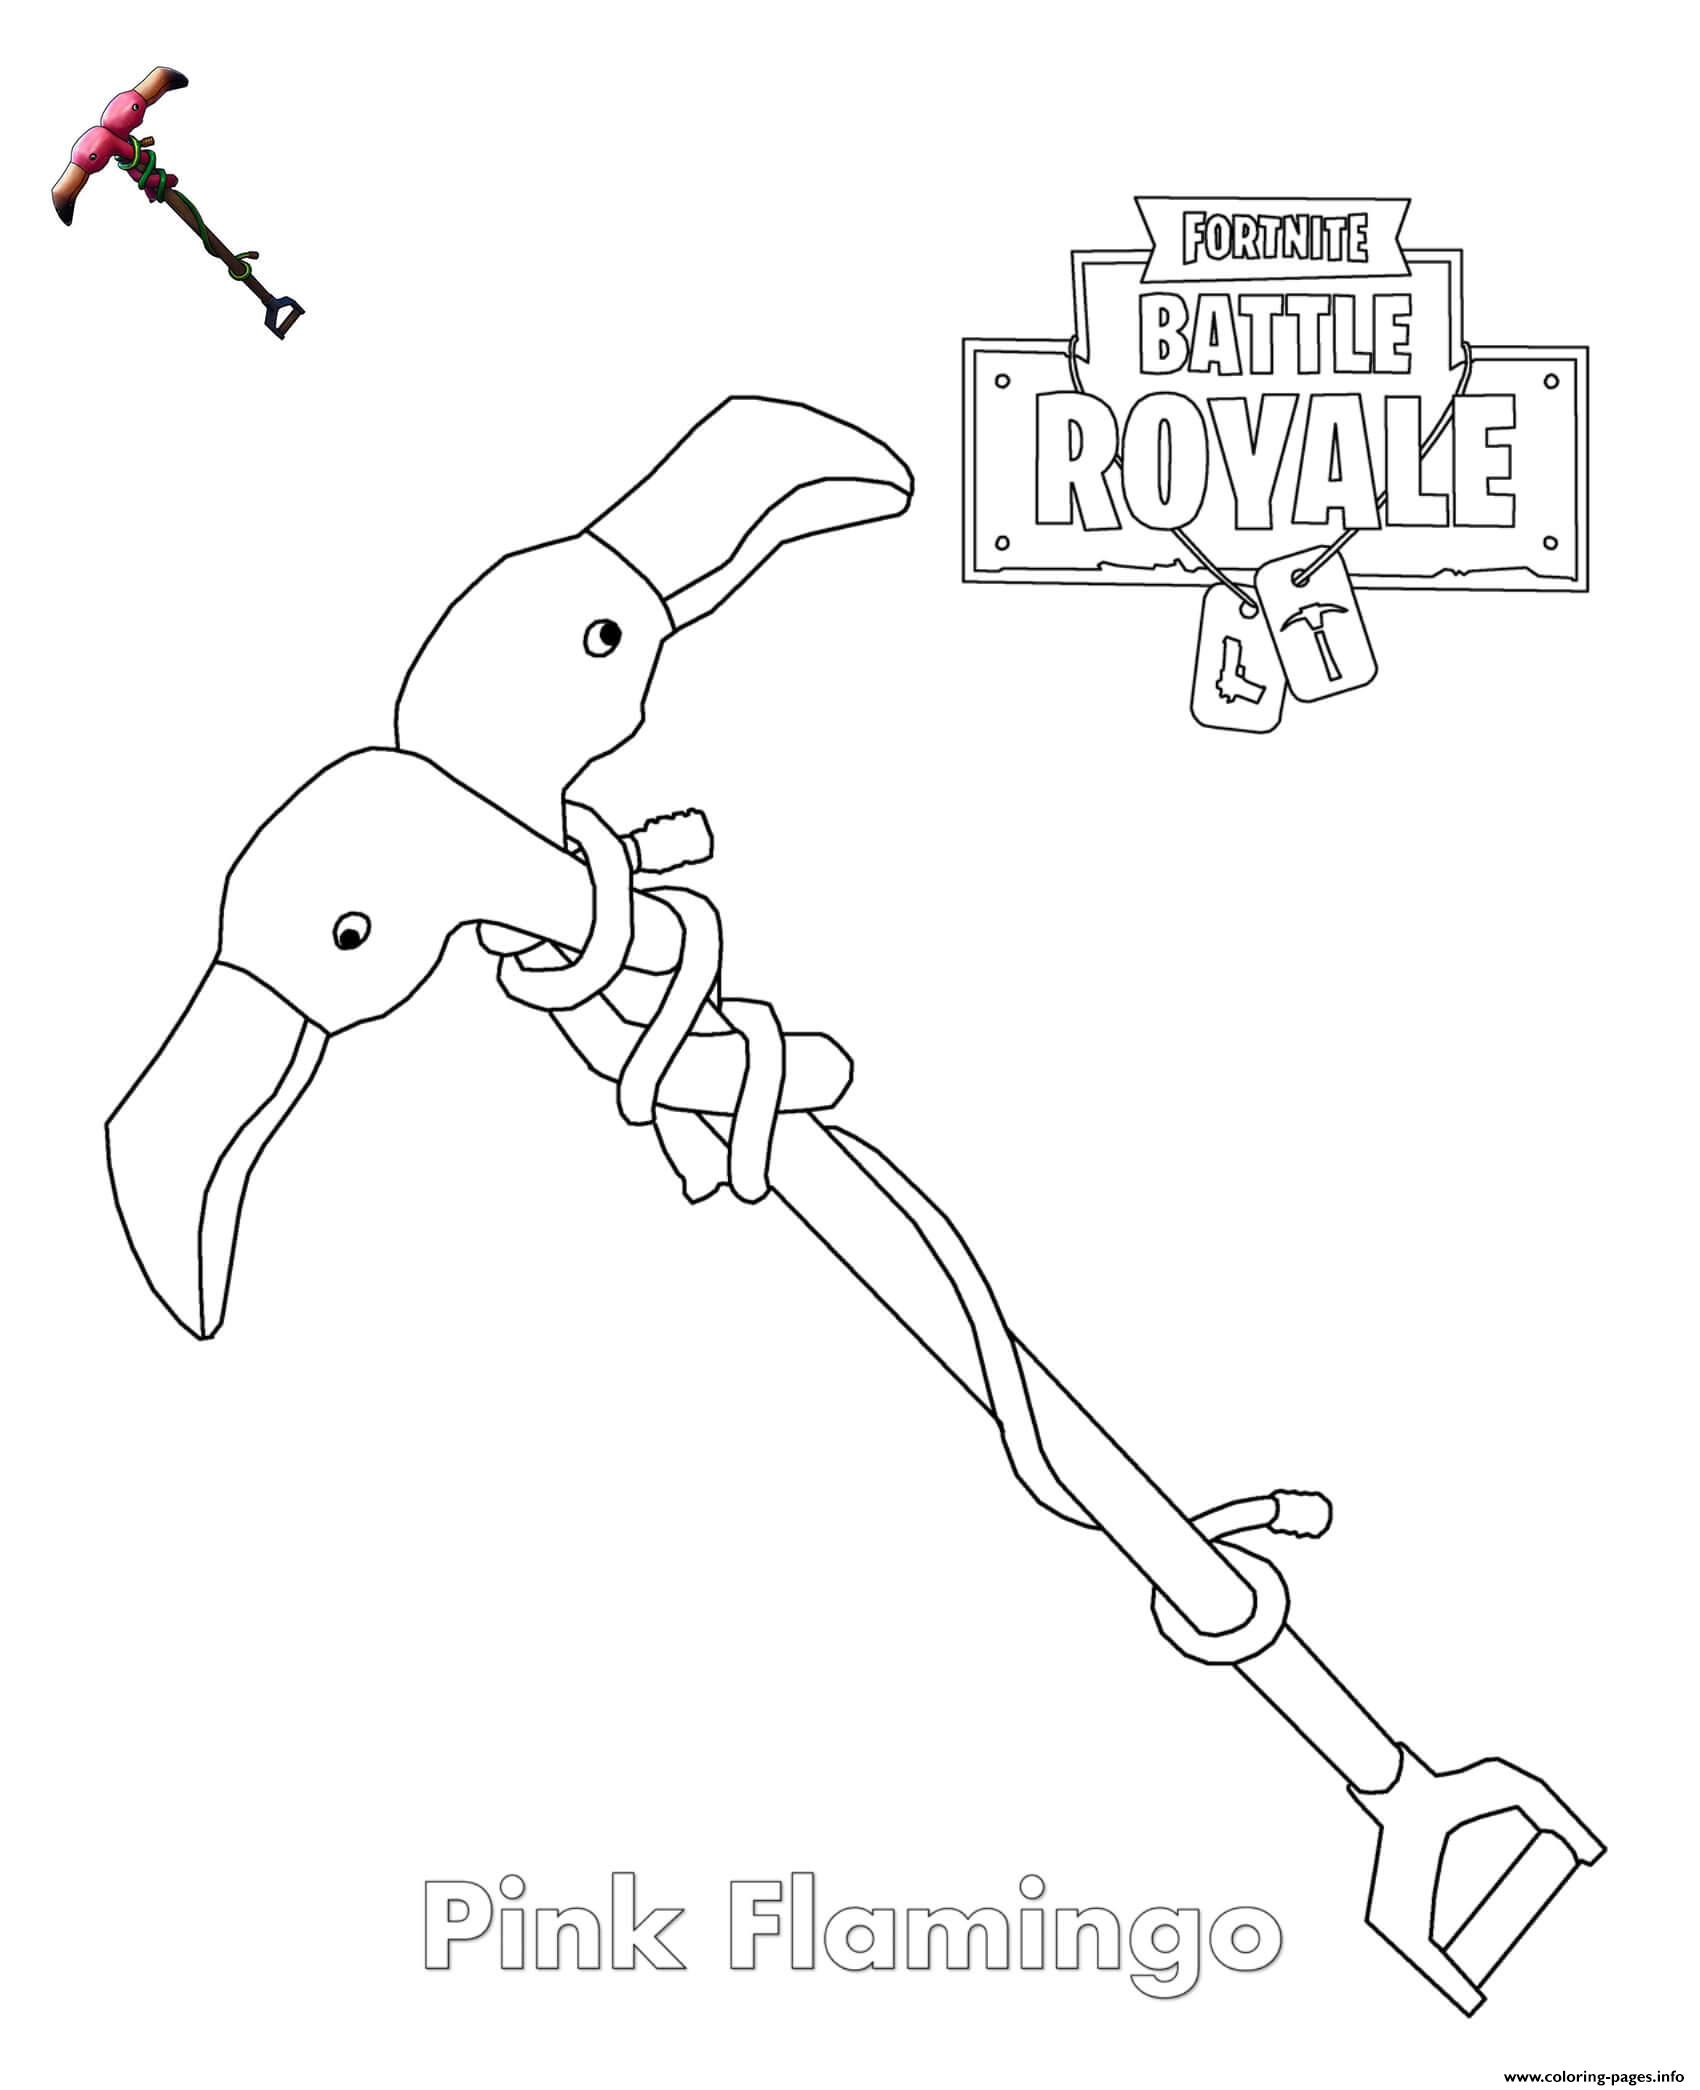 Pink Flamingo Pickaxe Fortnite Coloring Pages Printable